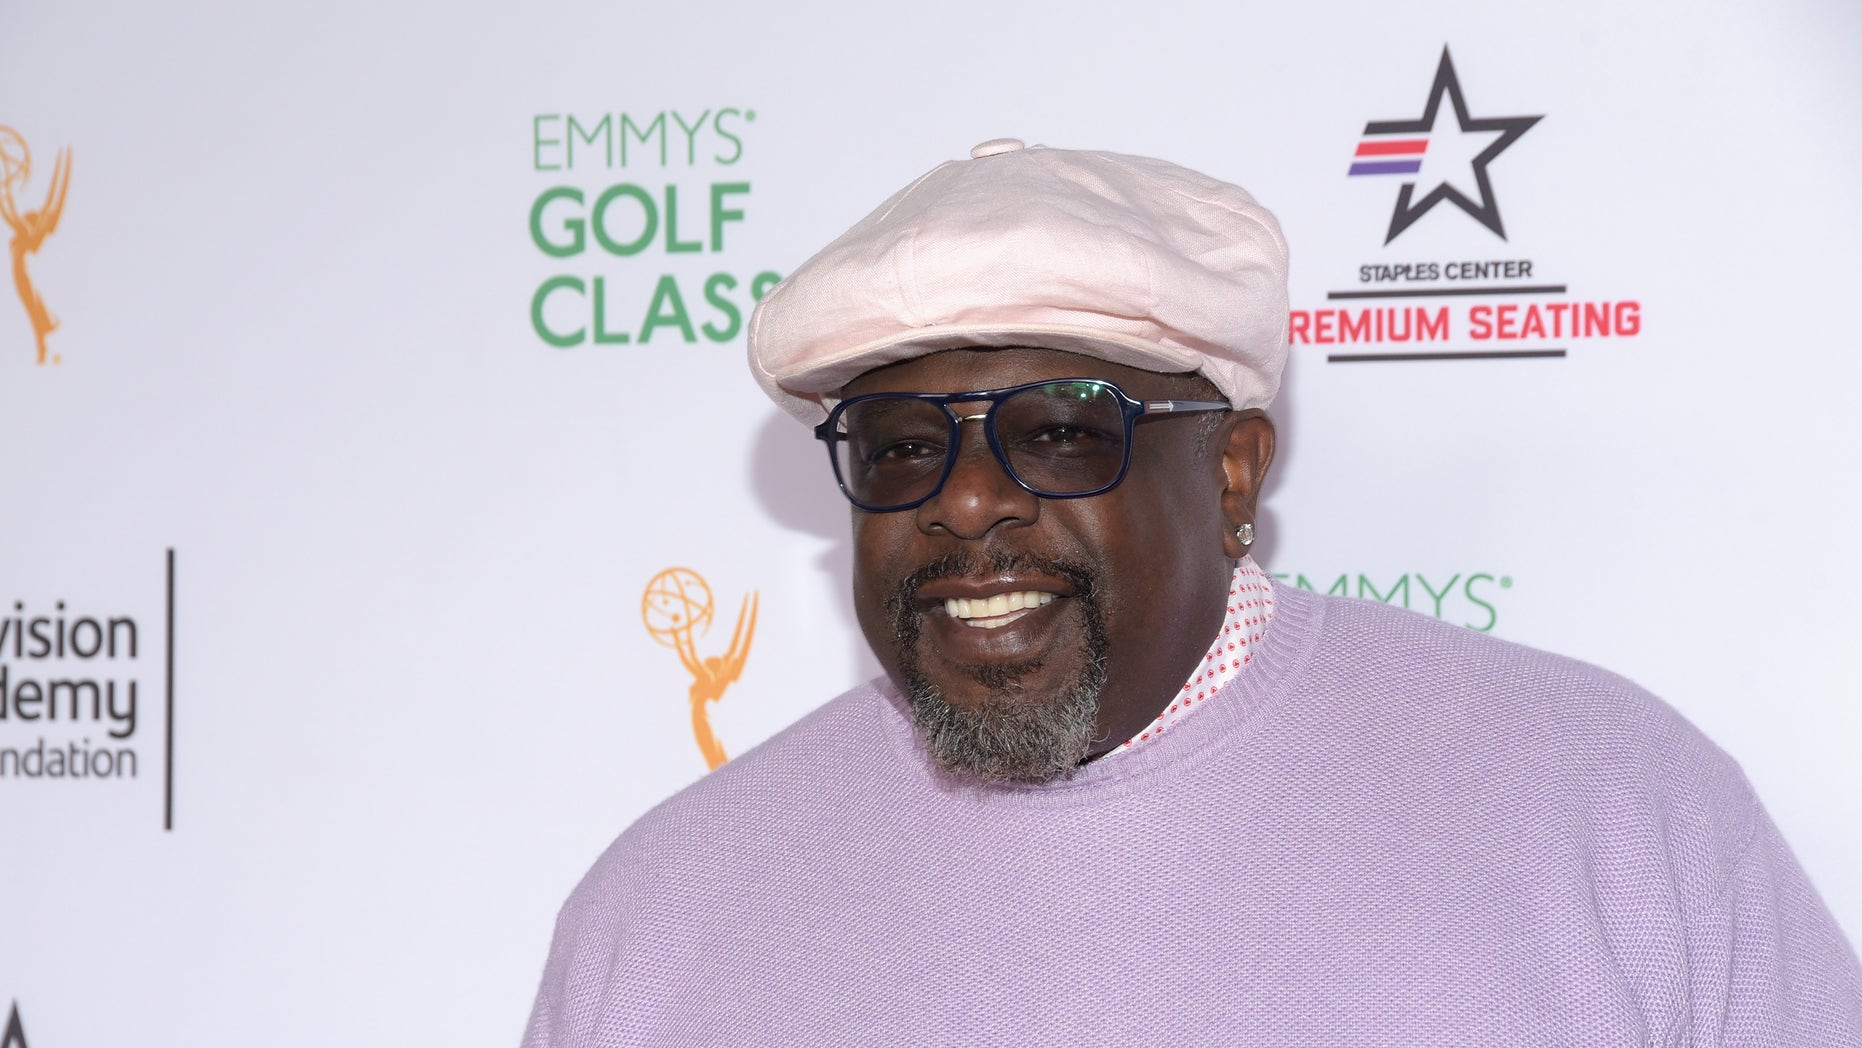 Cedric The Entertainer attends the 19th Annual Emmys Golf Classic benefiting the Television Academy Foundation at Wilshire Country Club on October 29, 2018 in Los Angeles, California.